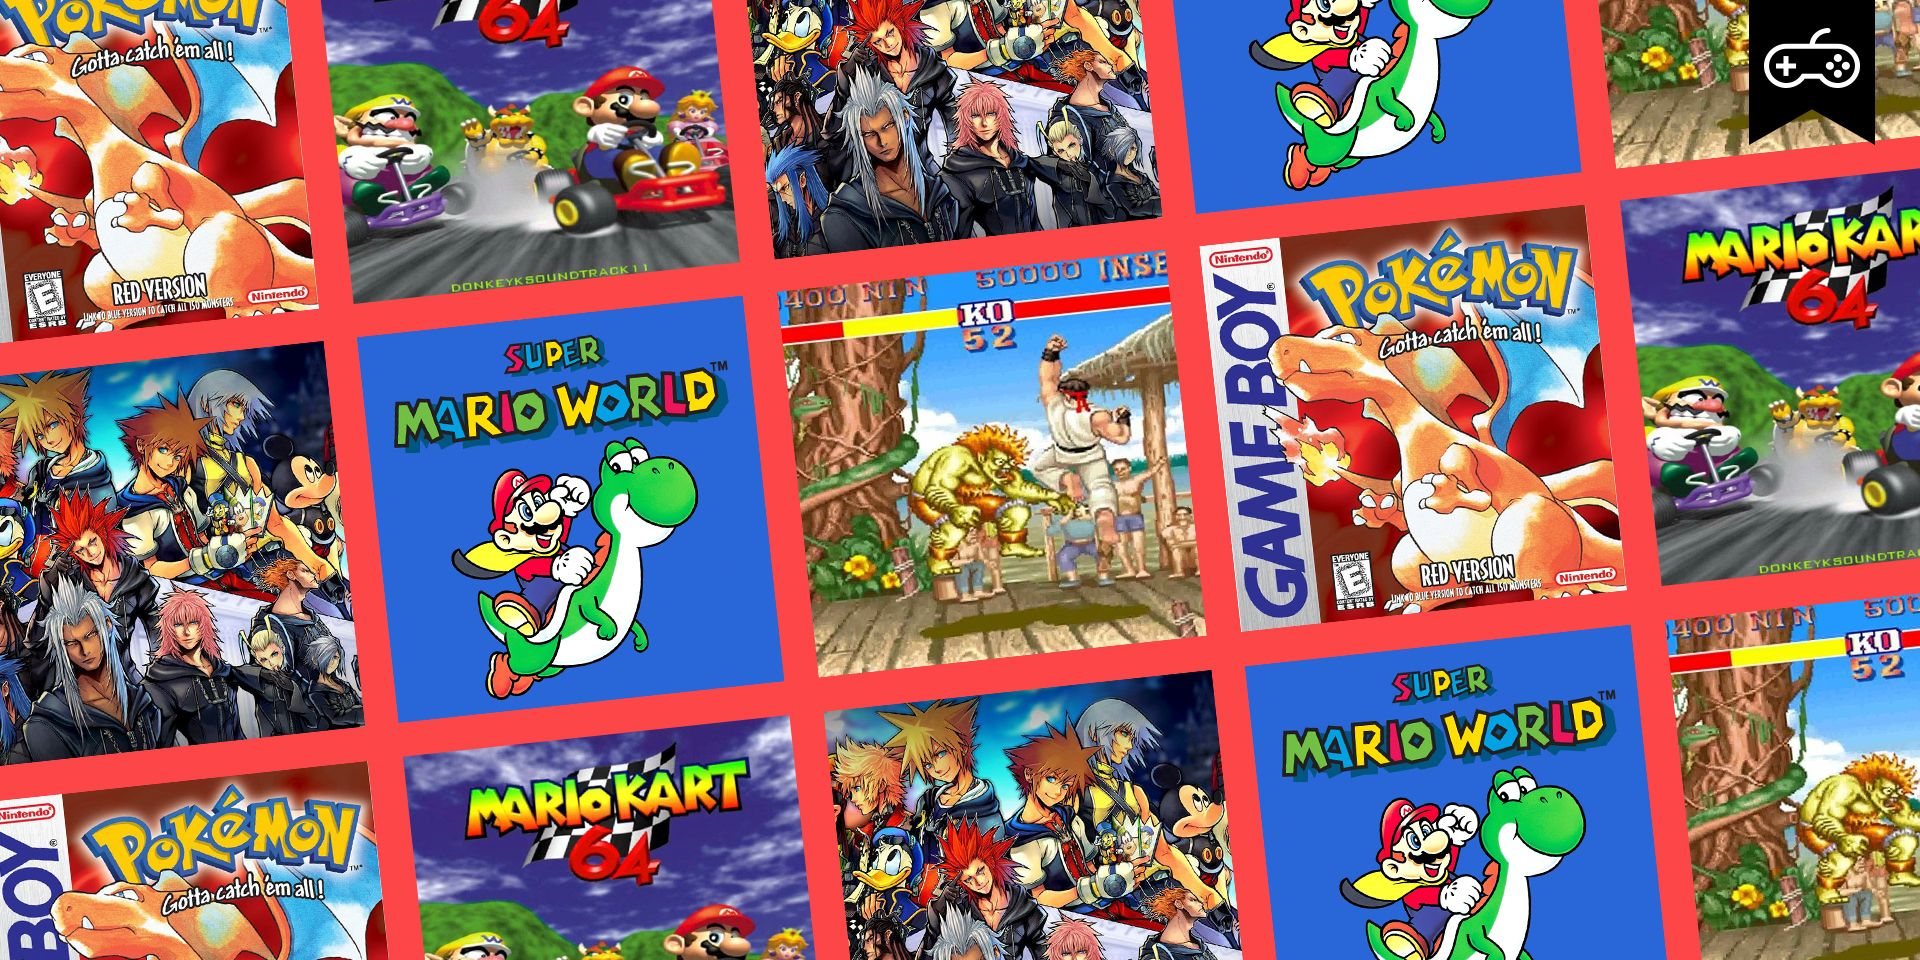 10 Best Video Games of All Time - Ranking the Most